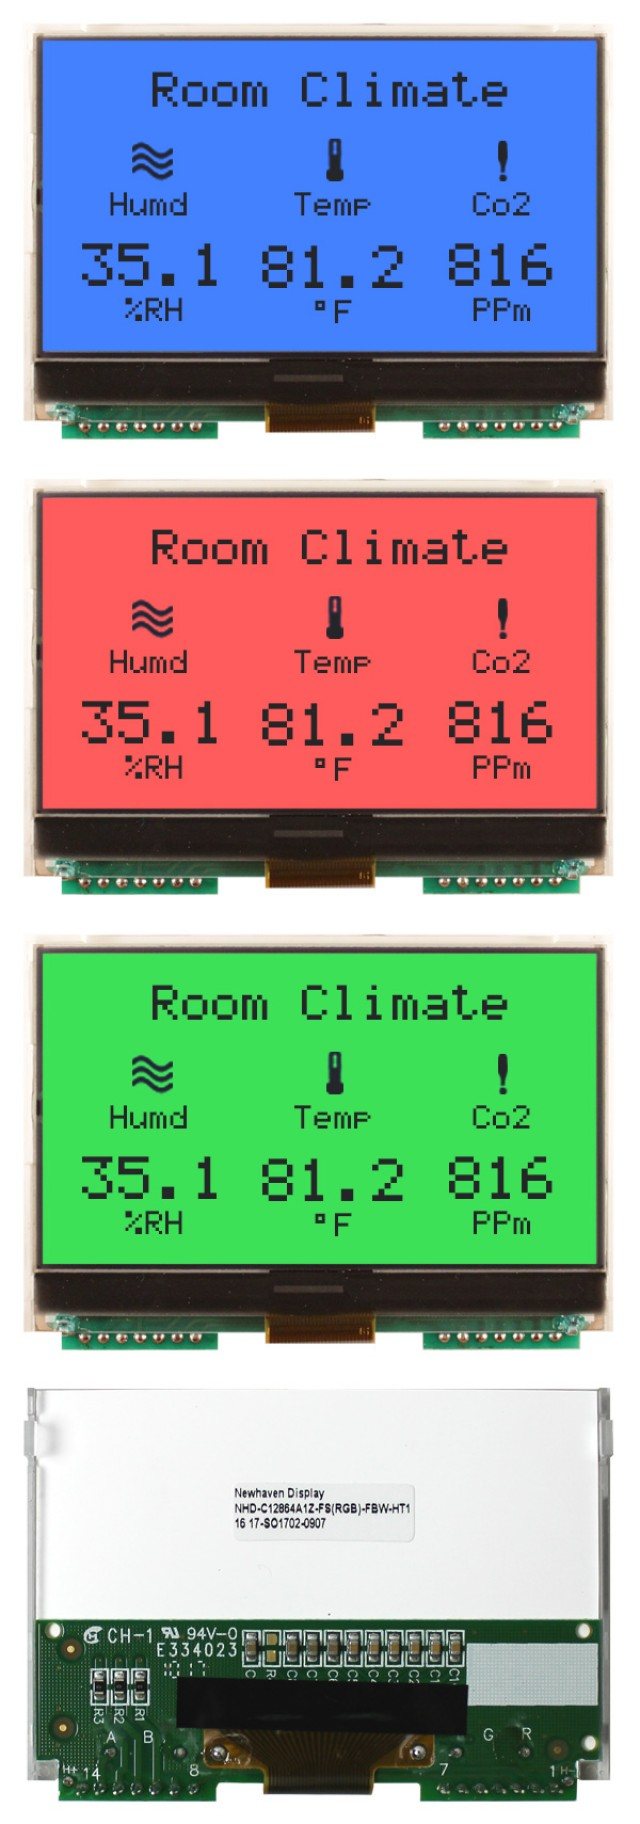 Newhaven NHD-C12864A1Z-FS(RGB)-FBW-HT1 Newhaven 128 x 64 Pixels Transflective Chip on Glass- Graphic + Heater Using SPI Interface and 12-Pin / PCB Connector. (Product Image)